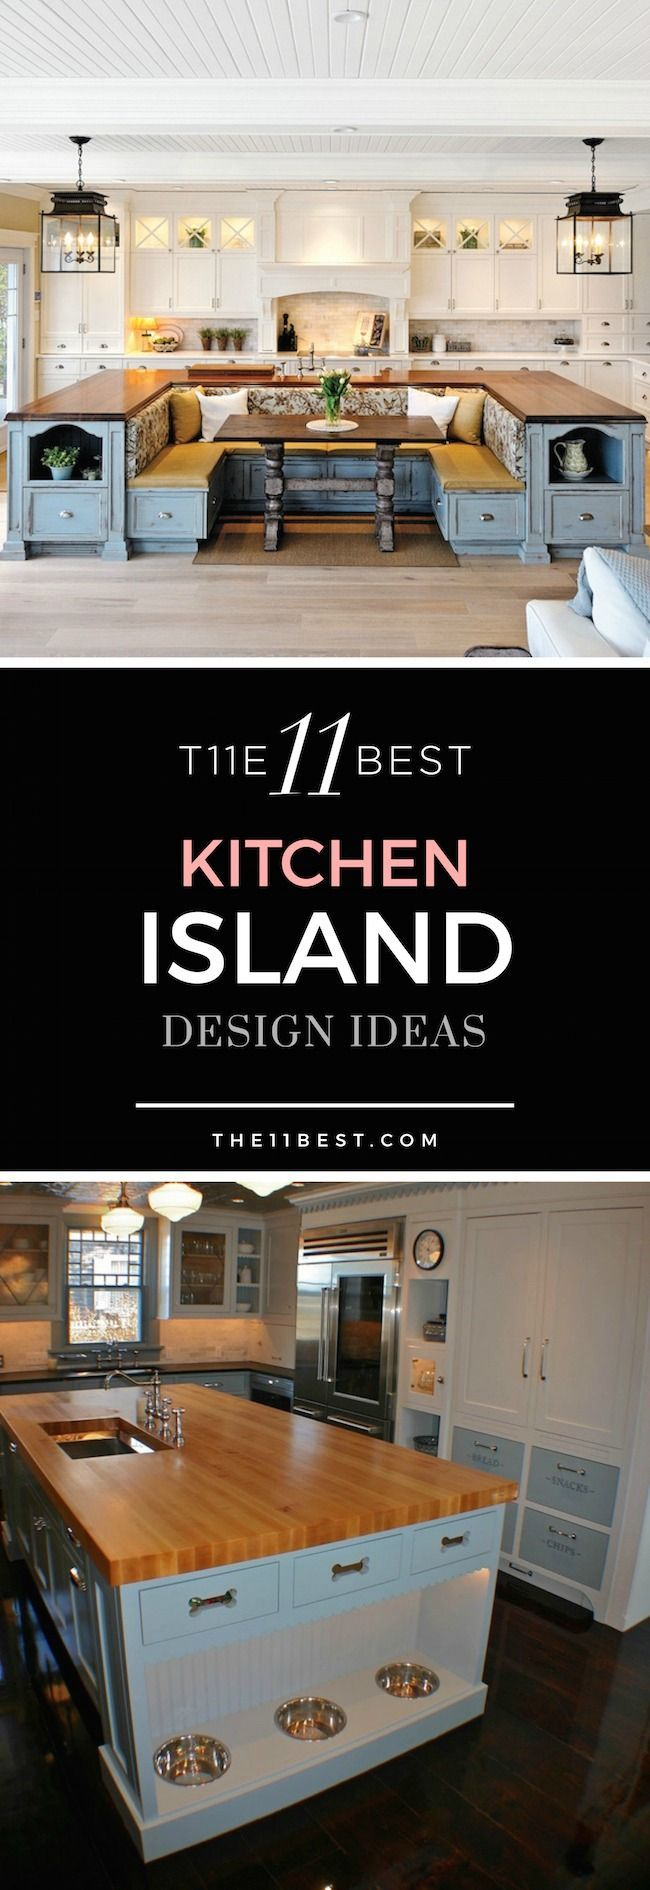 The 11 best kitchen island design ideas for your home for Kitchen remodeling ideas pinterest